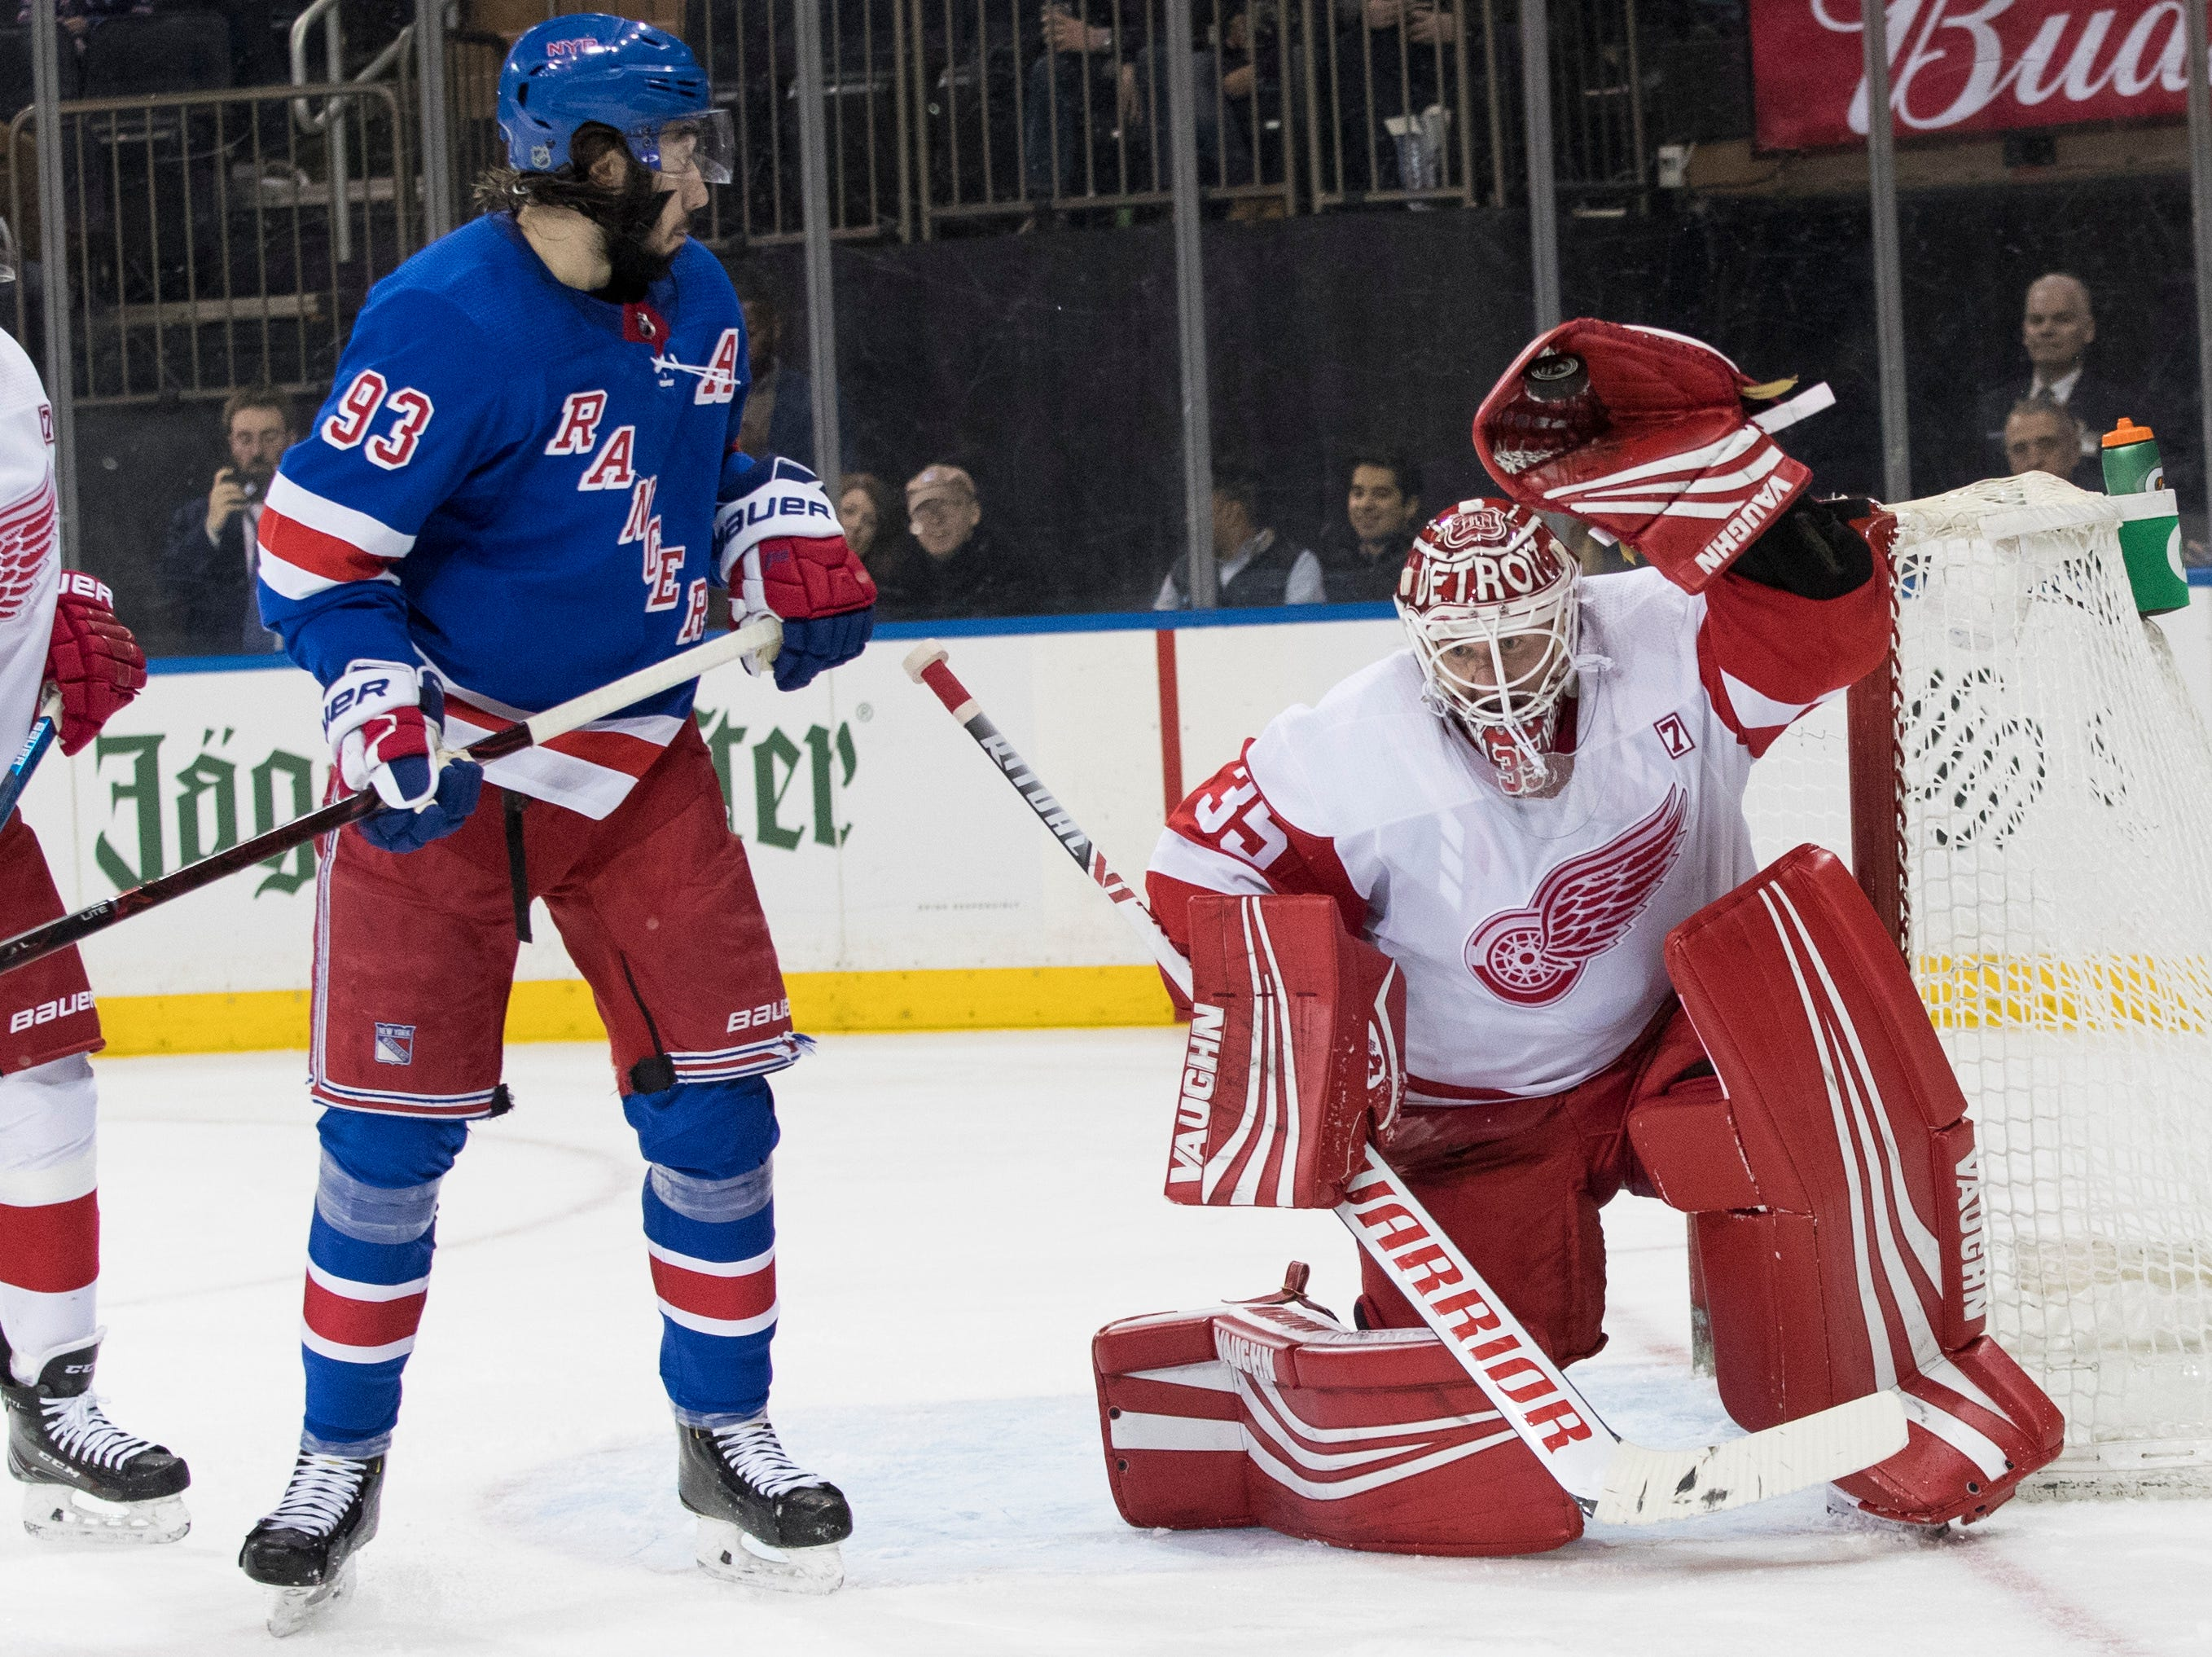 Detroit Red Wings goaltender Jimmy Howard (35) makes the save against New York Rangers center Mika Zibanejad (93) during the second period.